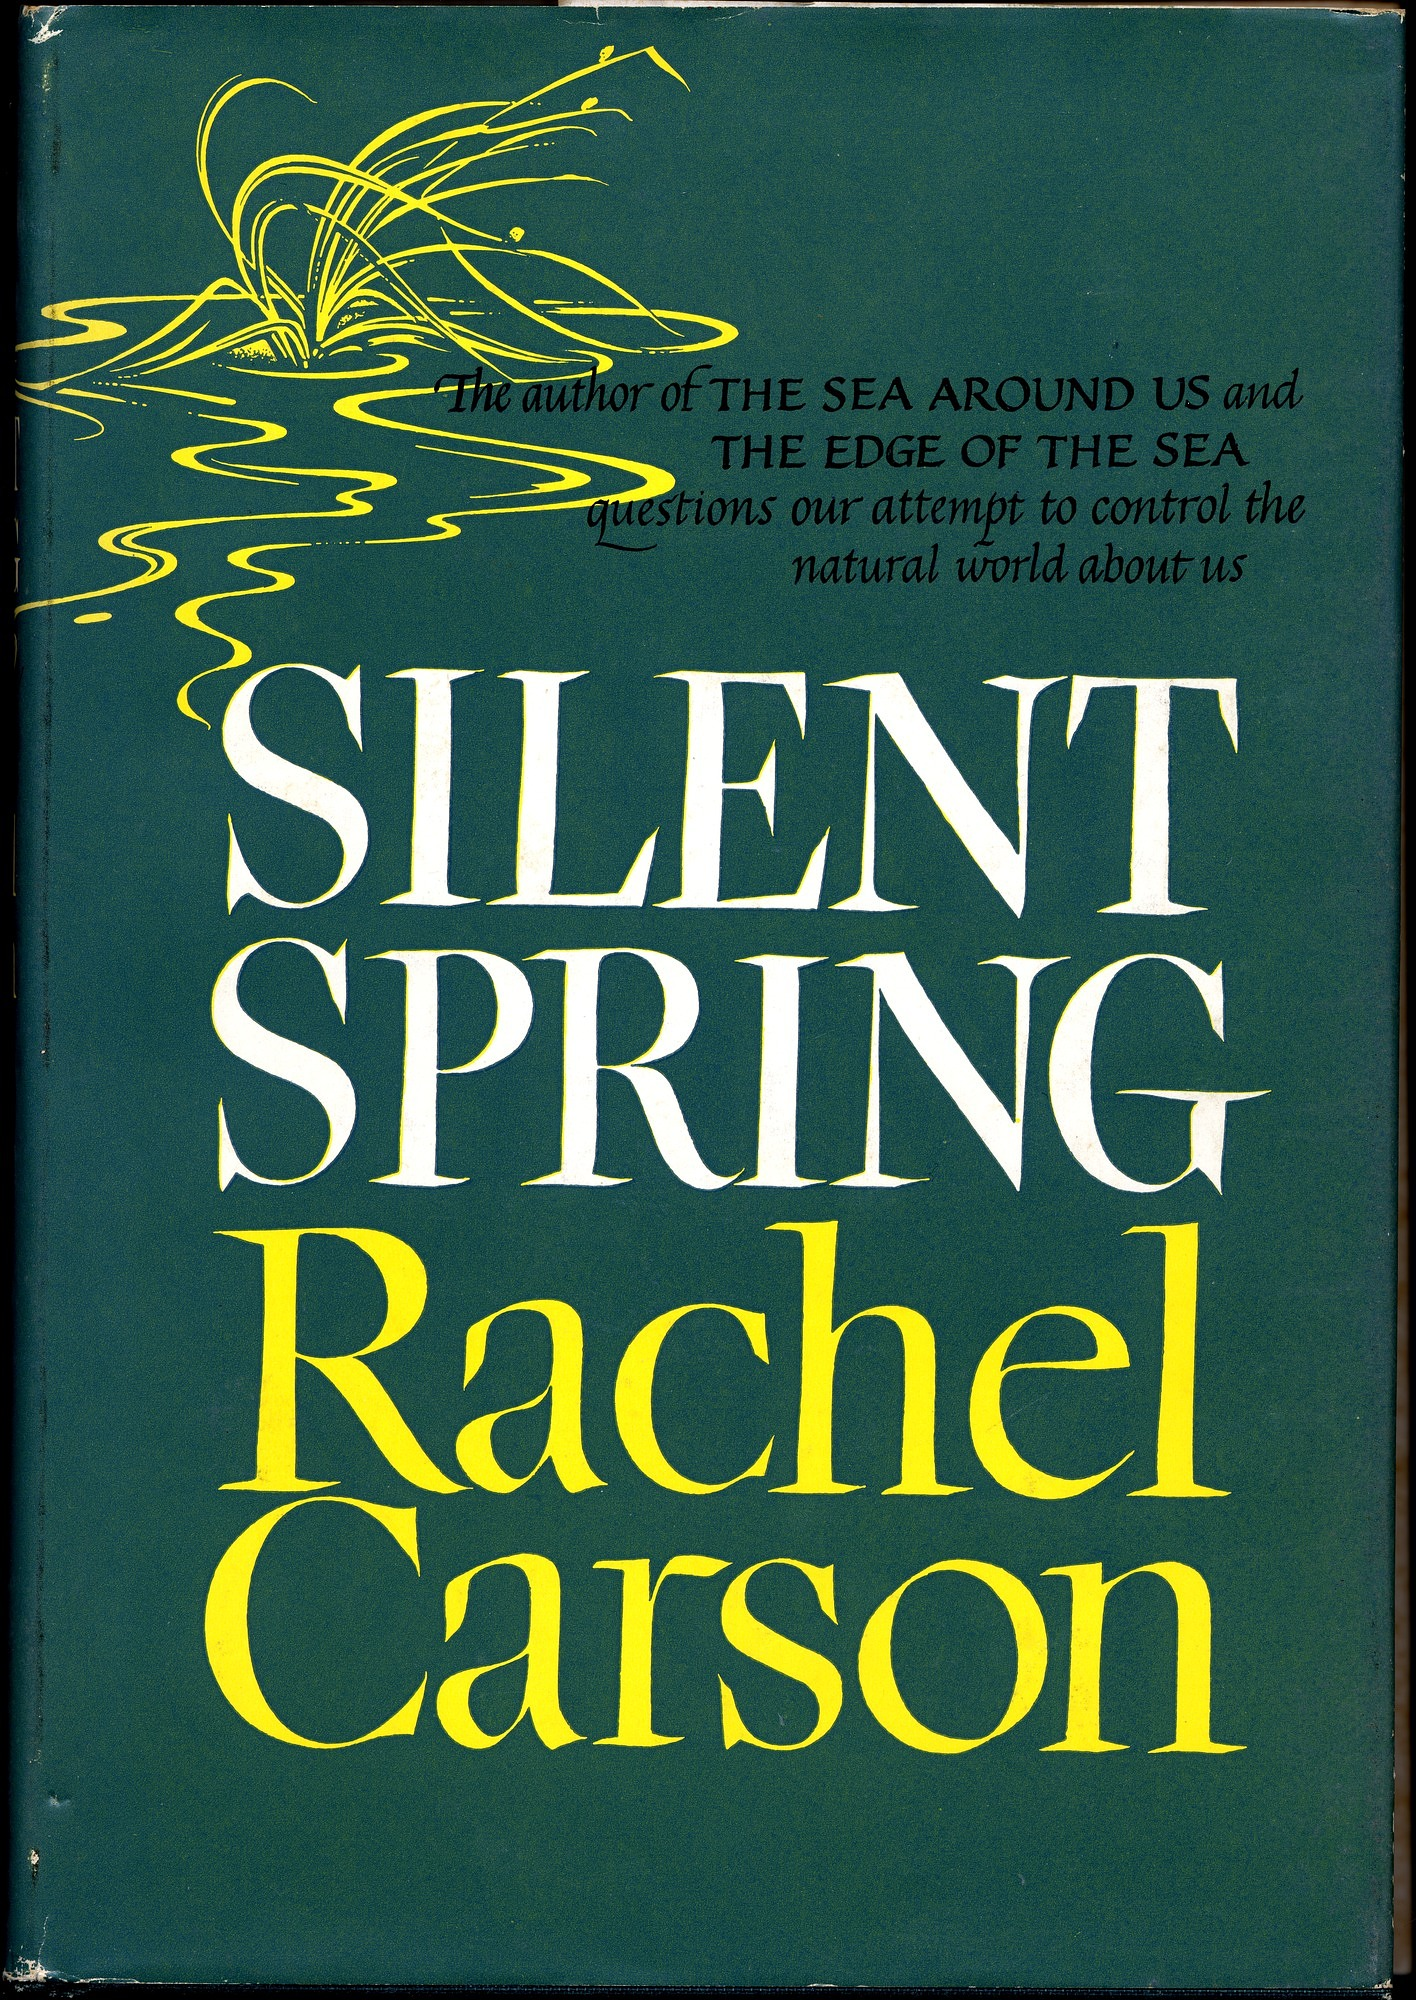 images for <i>Silent Spring</i>, Rachel Carson, 1962